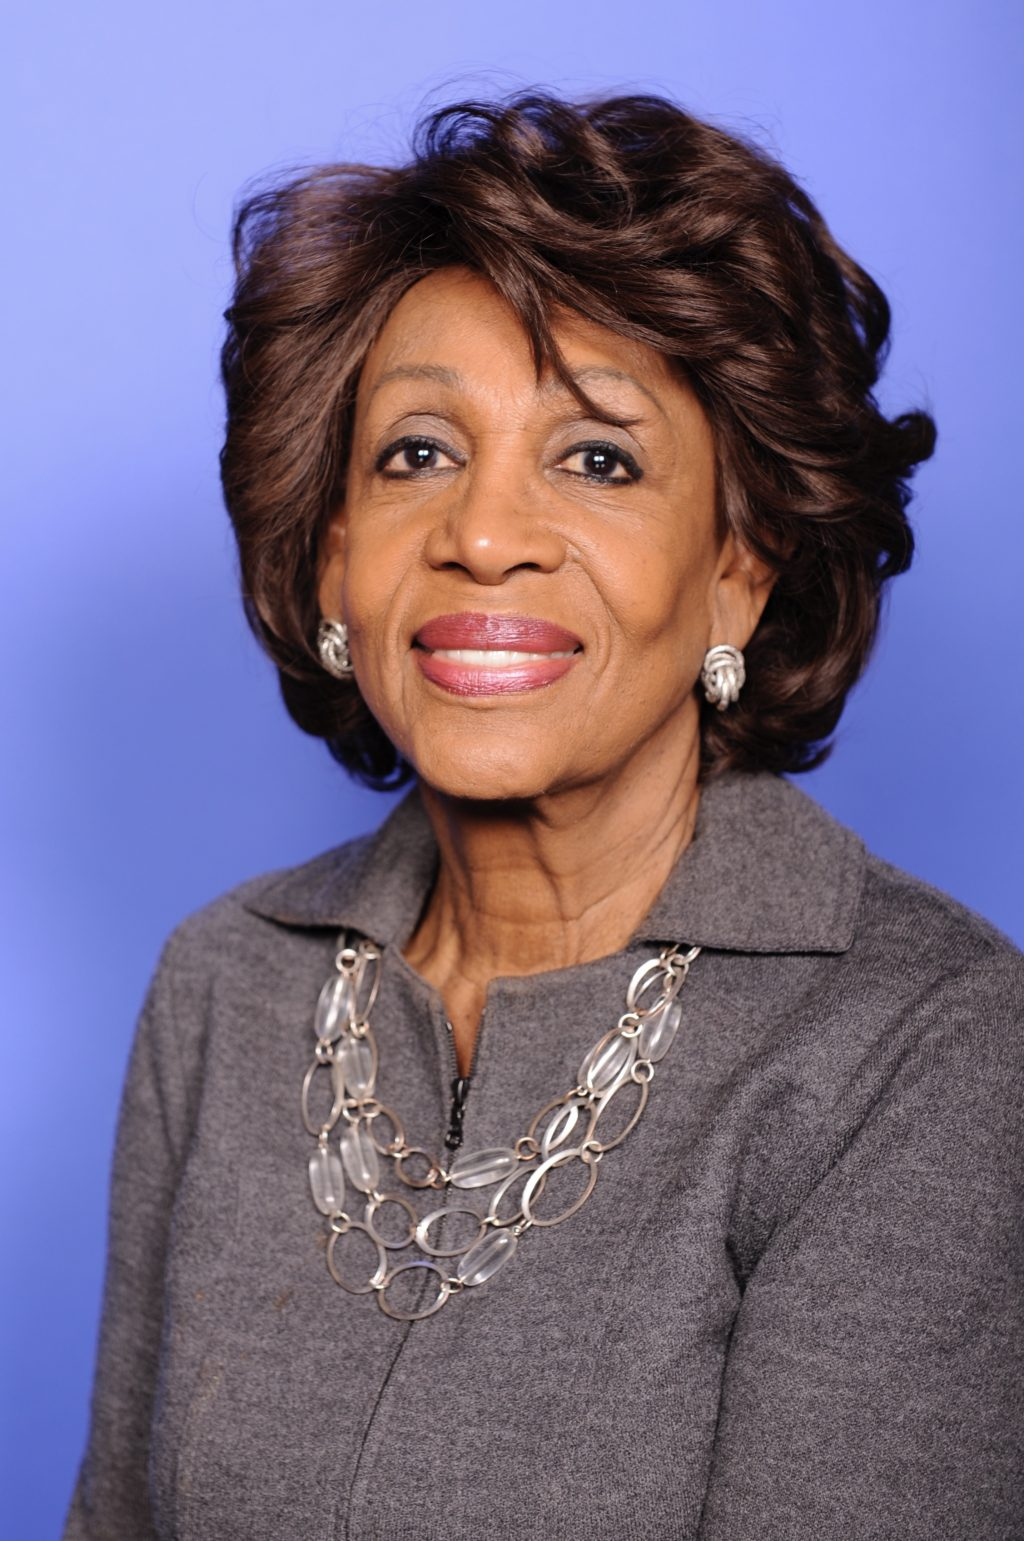 In Letter to Board of Airport Commissioners, Rep. Waters Expresses Concerns Regarding Expansion of LAX Capacity